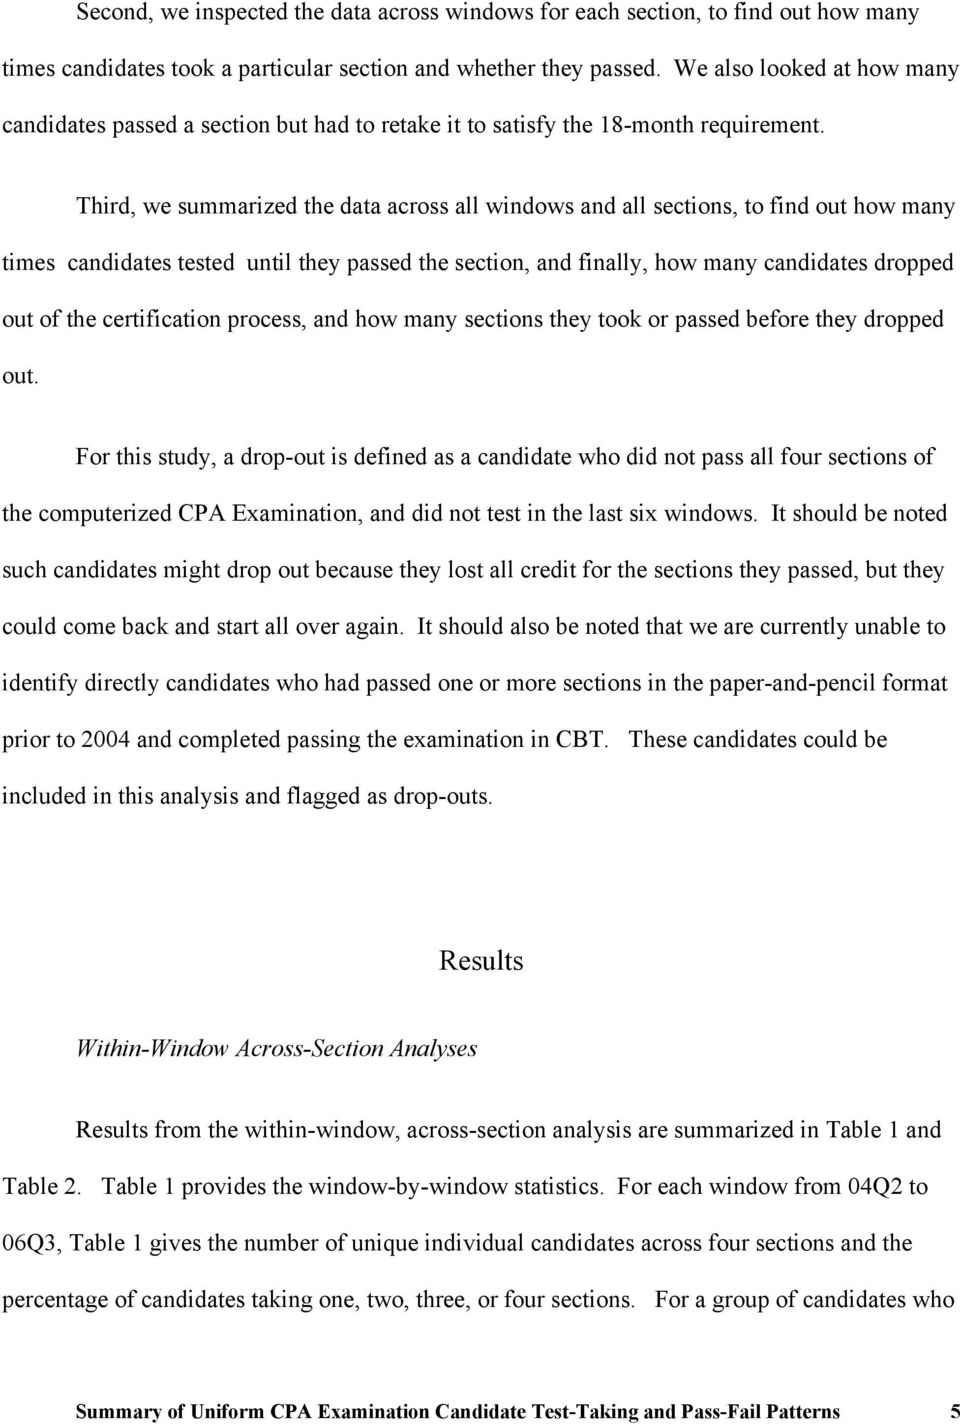 Third, we summarized the data across all windows and all sections, to find out how many times candidates tested until they passed the section, and finally, how many candidates dropped out of the